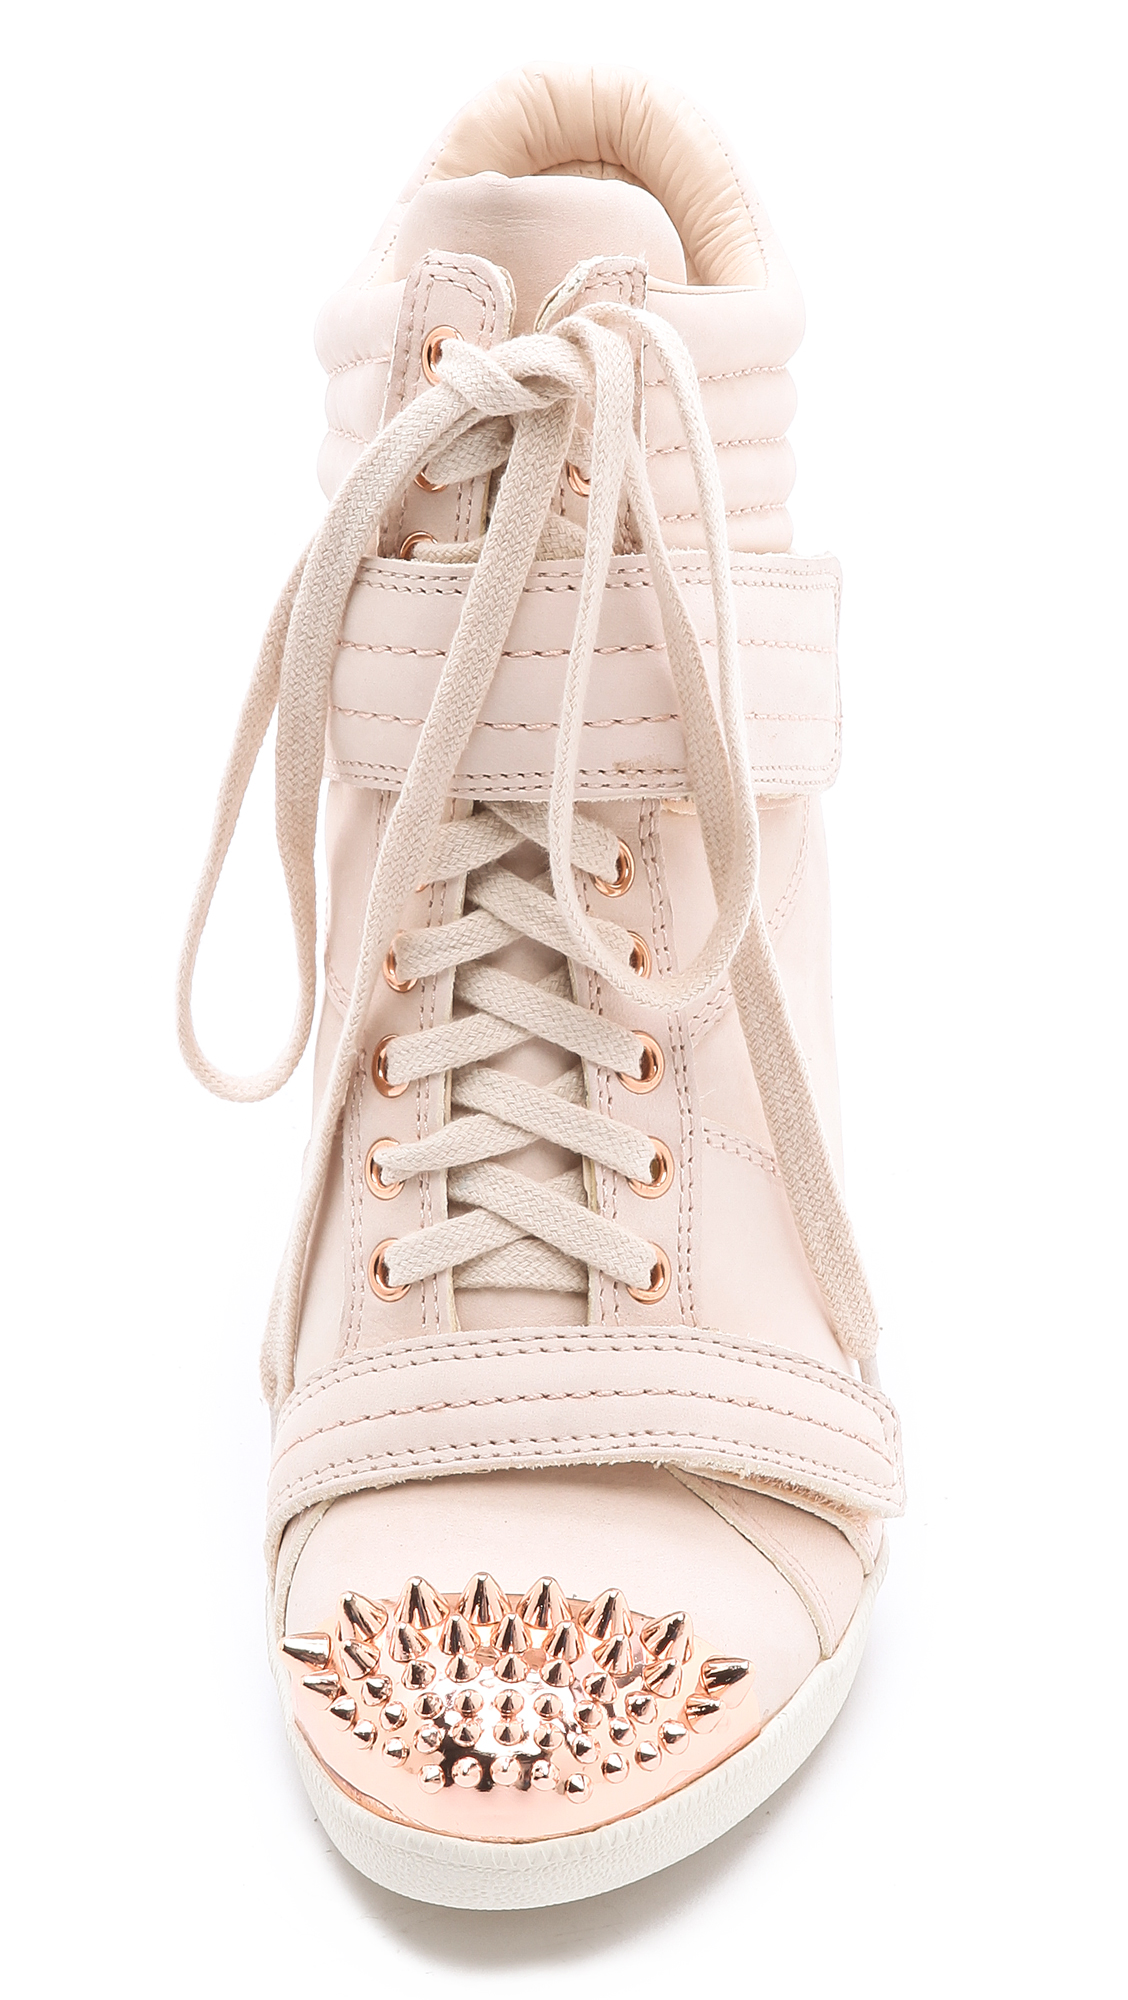 Boutique 9 Nevan Wedge Sneakers in Blush (Pink) - Lyst